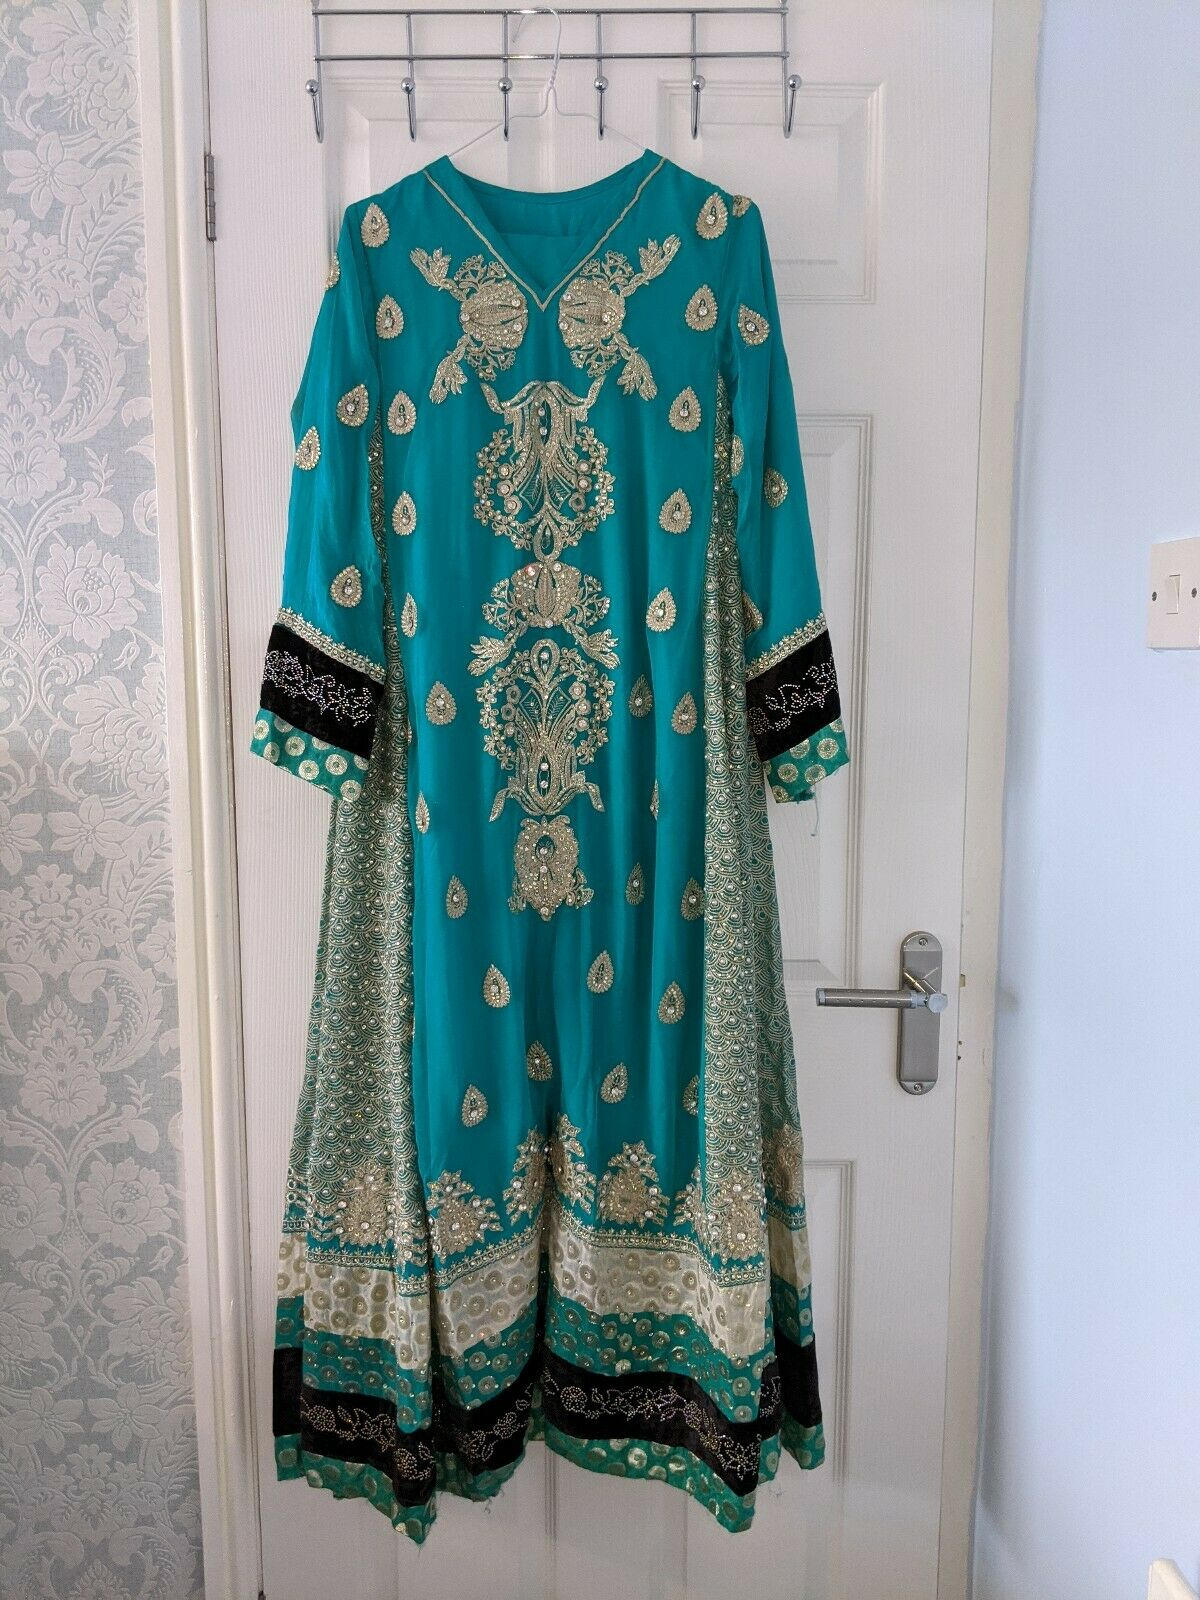 XS Blue/Green Pearls Embellished Embroidered Pakistani Wedding Asian Suit